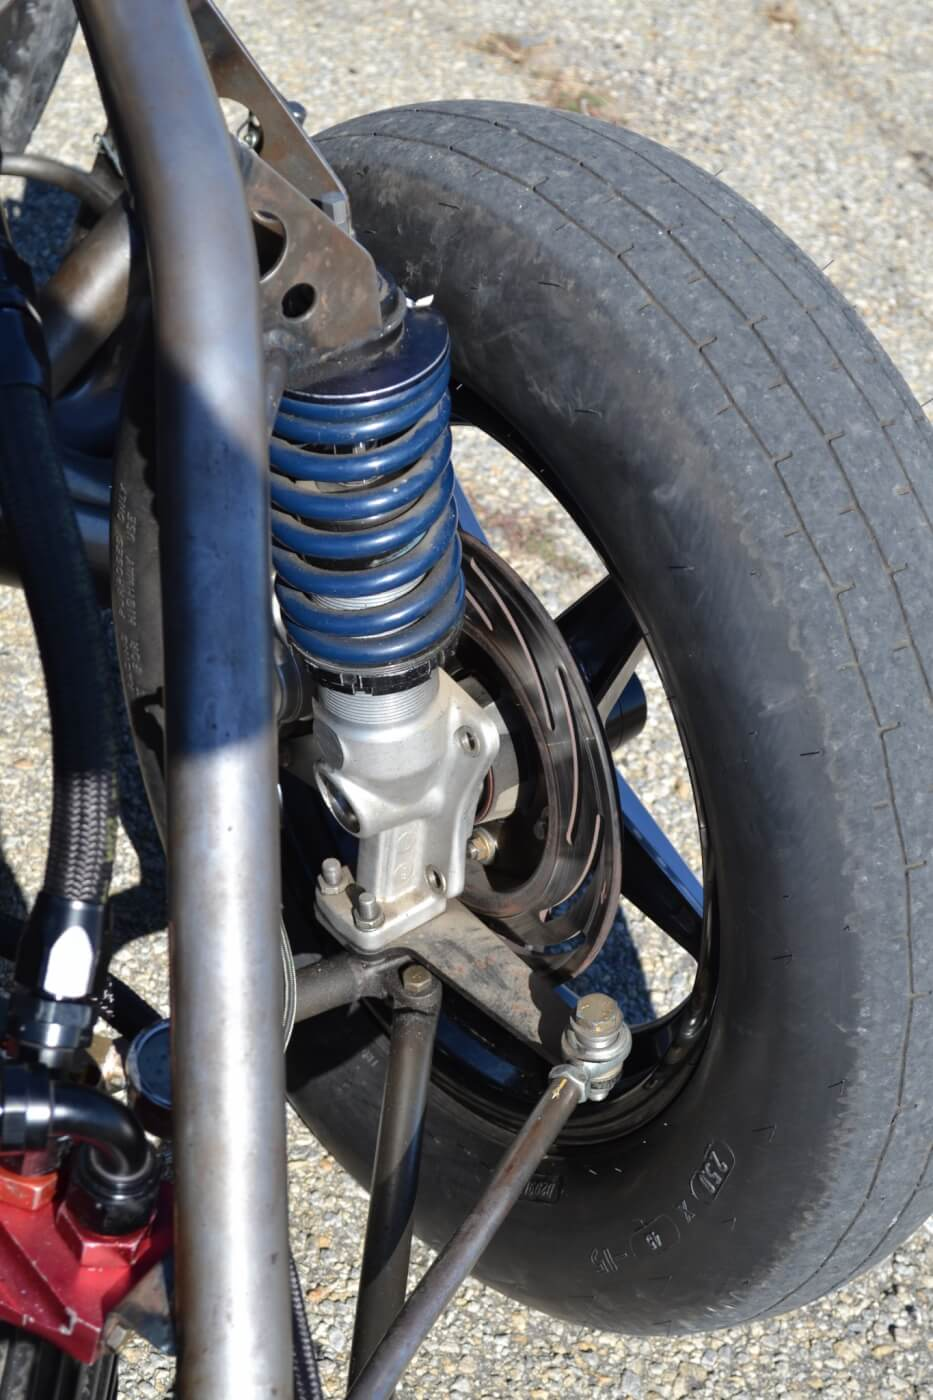 The front suspension is also a drag race affair, as Strange struts are employed. Combined with a rack and pinion steering unit, the entire front steering, suspension, and brakes are well under 100 lbs. combined.